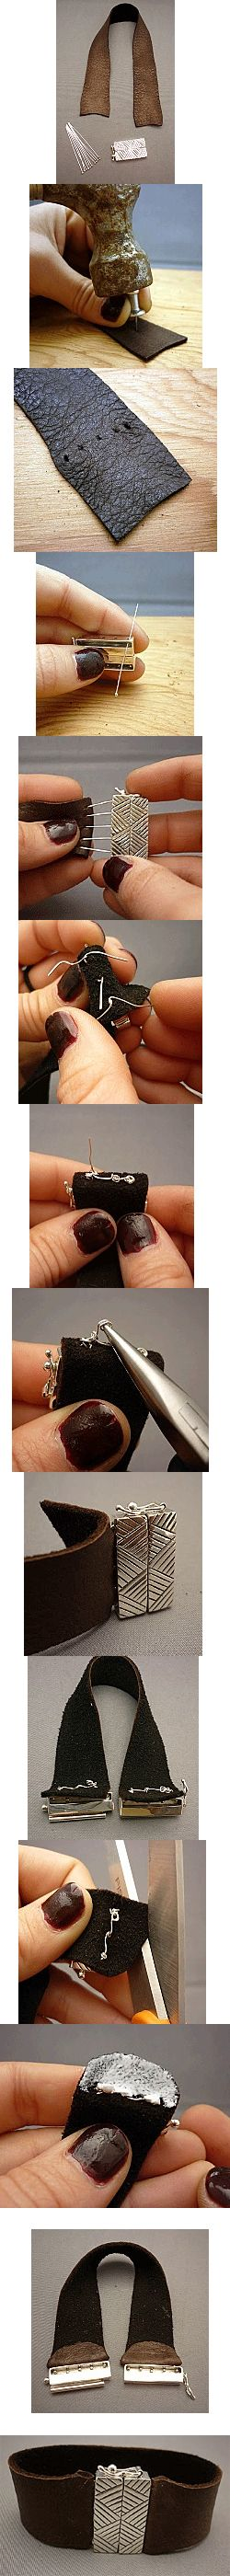 Make your own Wide Leather Bracelet! Great for Men & Women. Click here for directions http://www.ninadesigns.com/how_to_make_your_own_jewelry/leather_bracelet_and_box_clasp.html